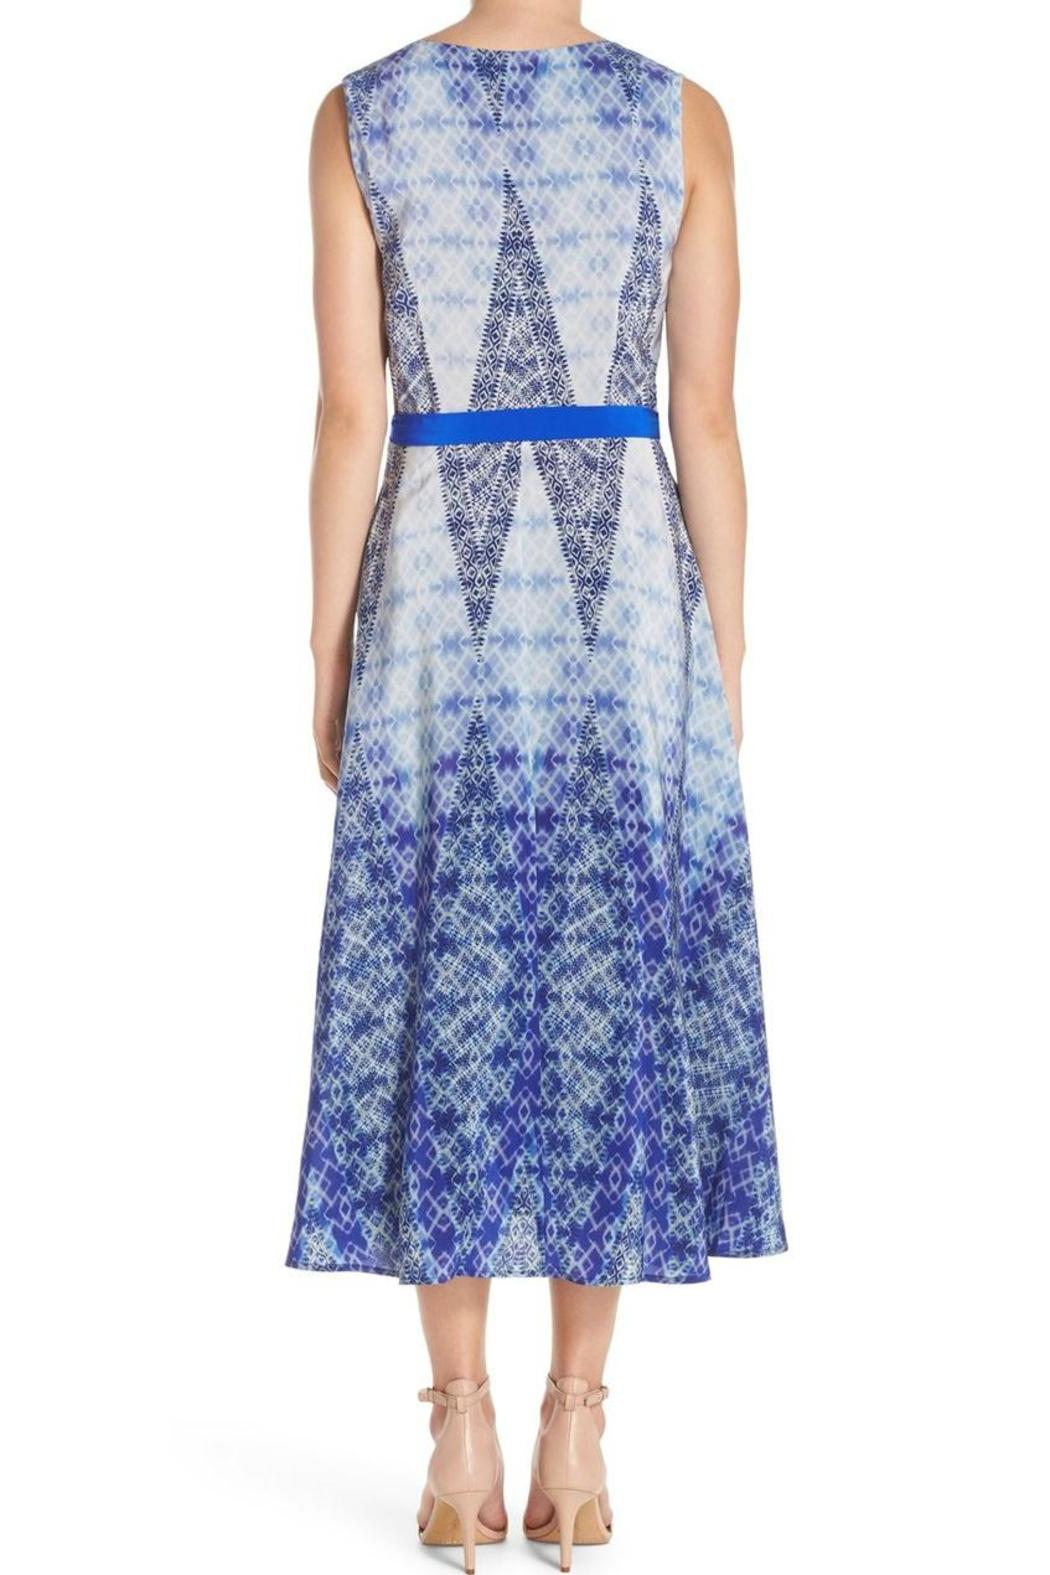 Charlie Jade Starla Midi Dress - Side Cropped Image